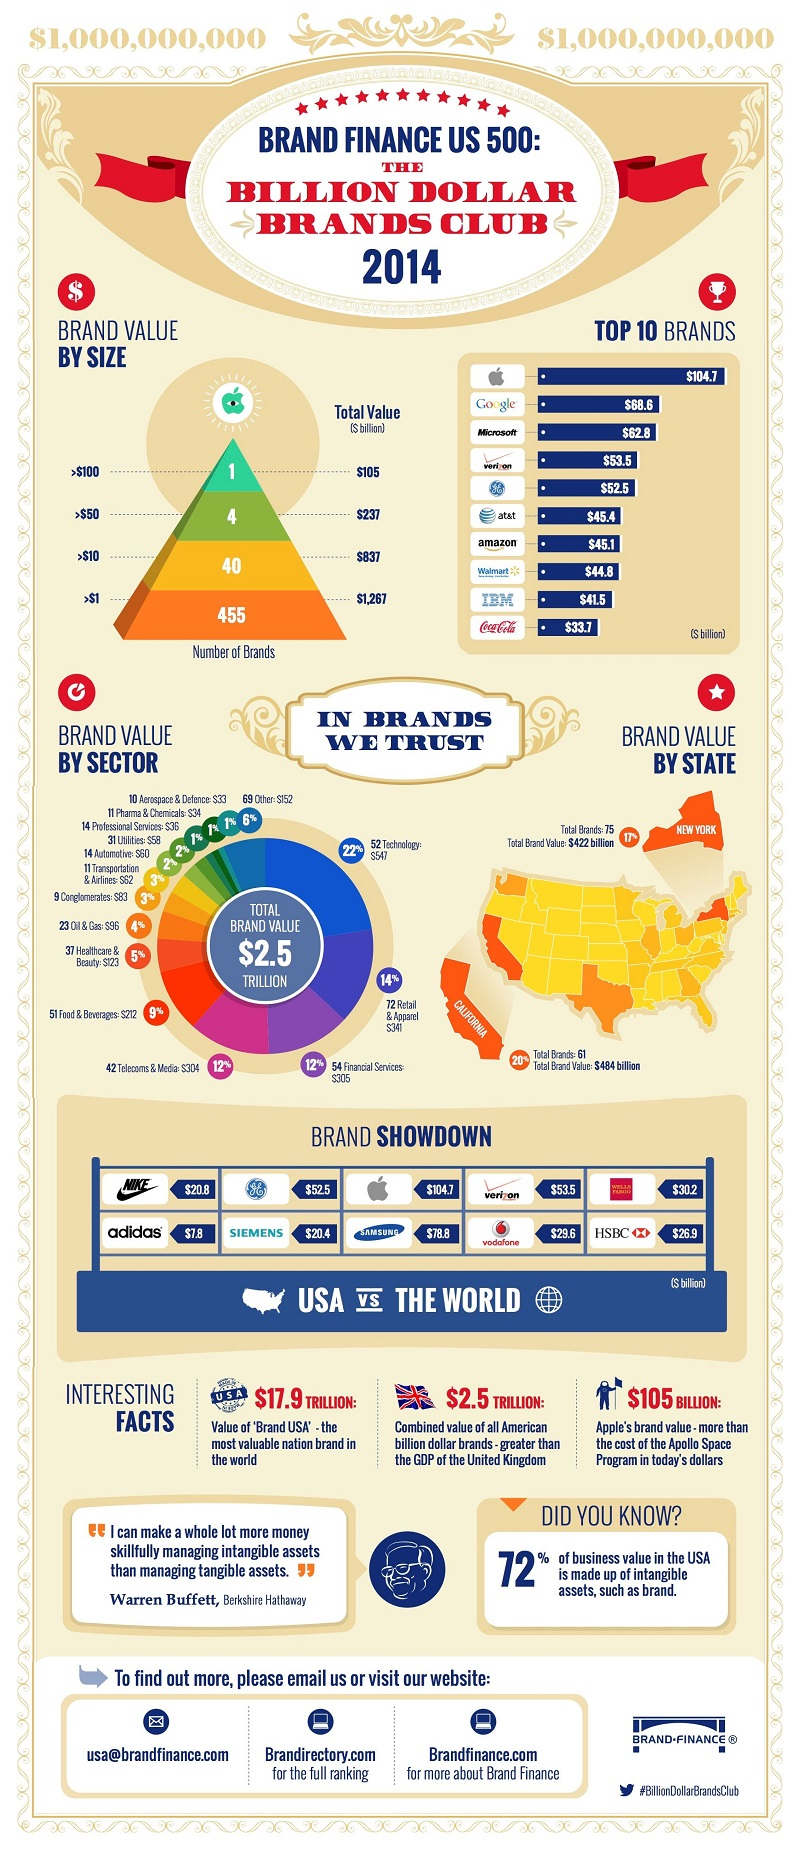 2. Brand Finance US 500 top brand chart